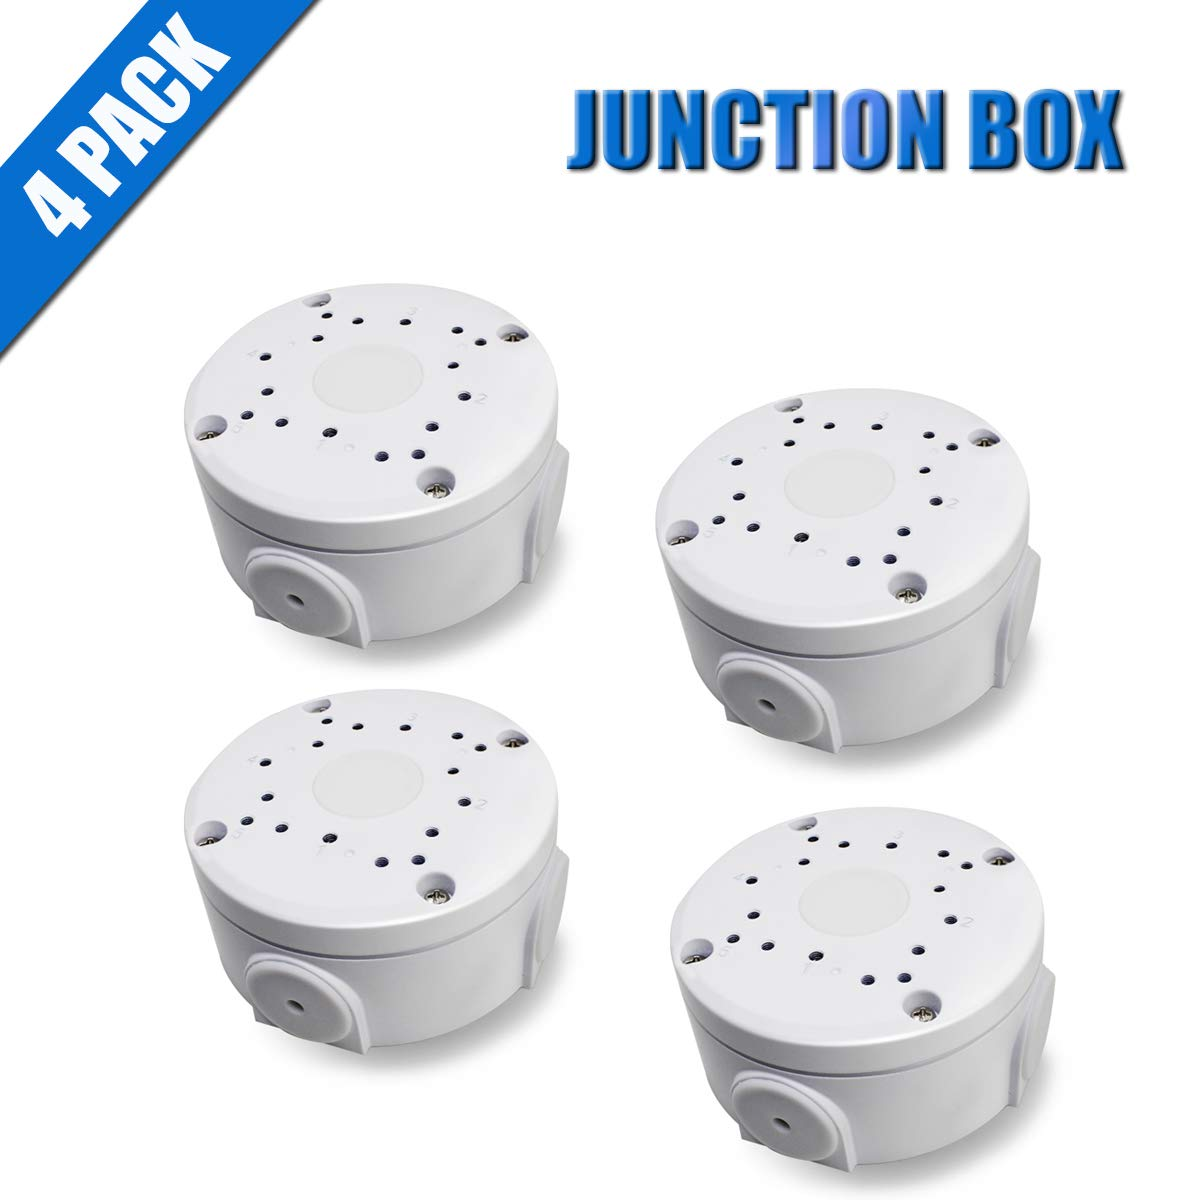 Aluminum Bracket Junction Back Box Onduit Base for OHWOAI Bullet Cameras, Water-Proof Junction Box for IP Camera (4 Pack) Electric Enclosure for Indoor/Outdoor Use with Screws Cable DIY Case Encl by OHWOAI